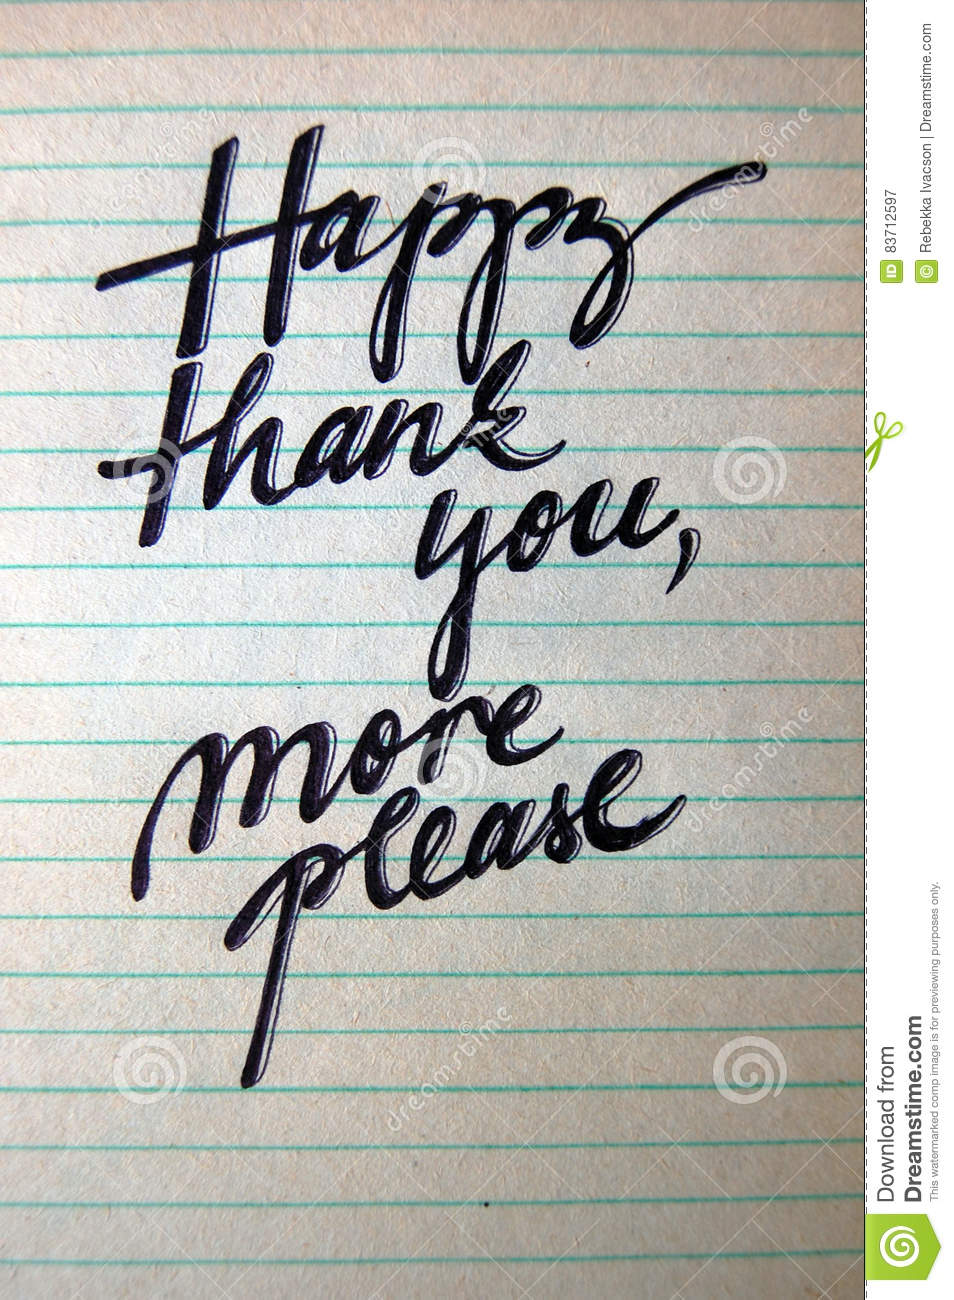 Happy Thank You More Please Calligraphic Background Stock Photo